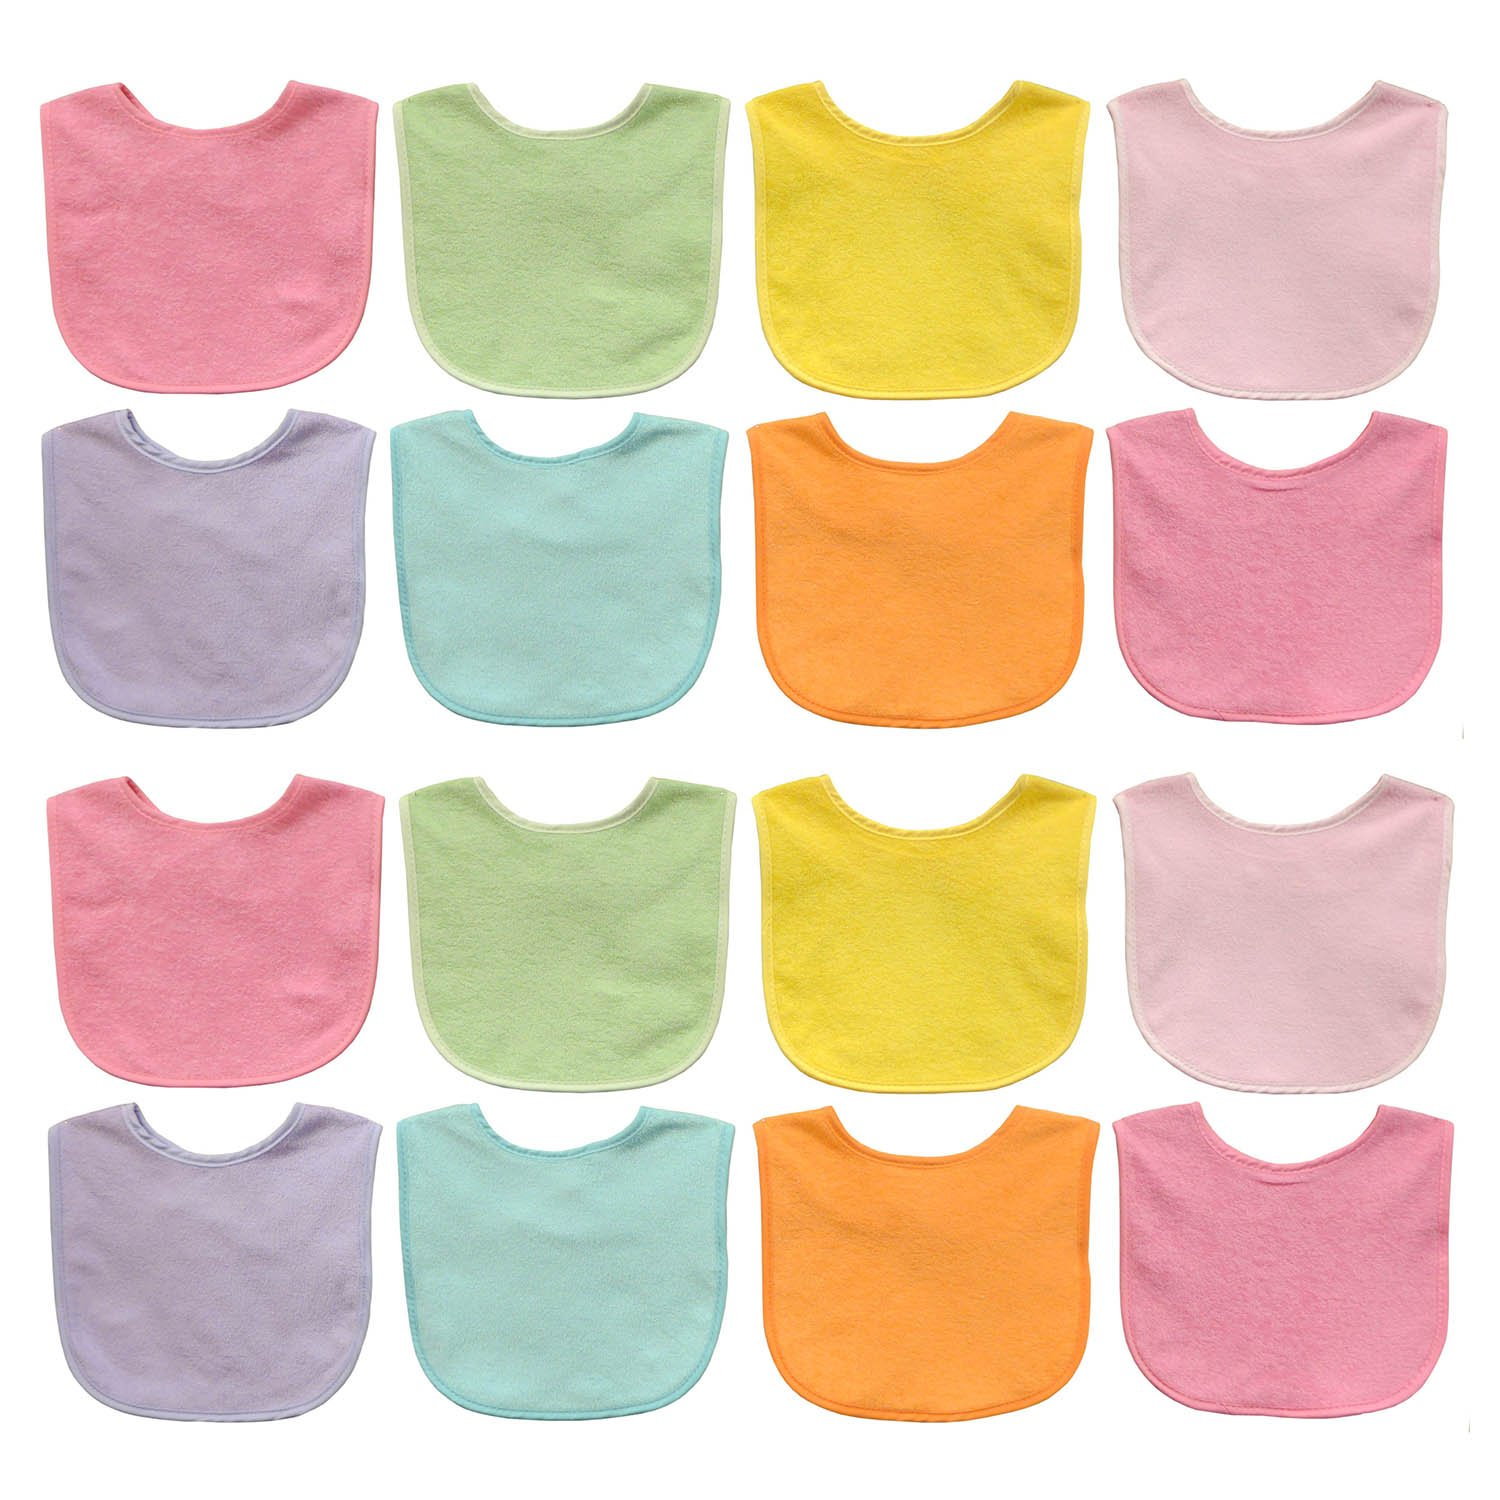 Neat Solutions Solid Colored Terry Feeder Bibs Girl, Multi, 16 Count